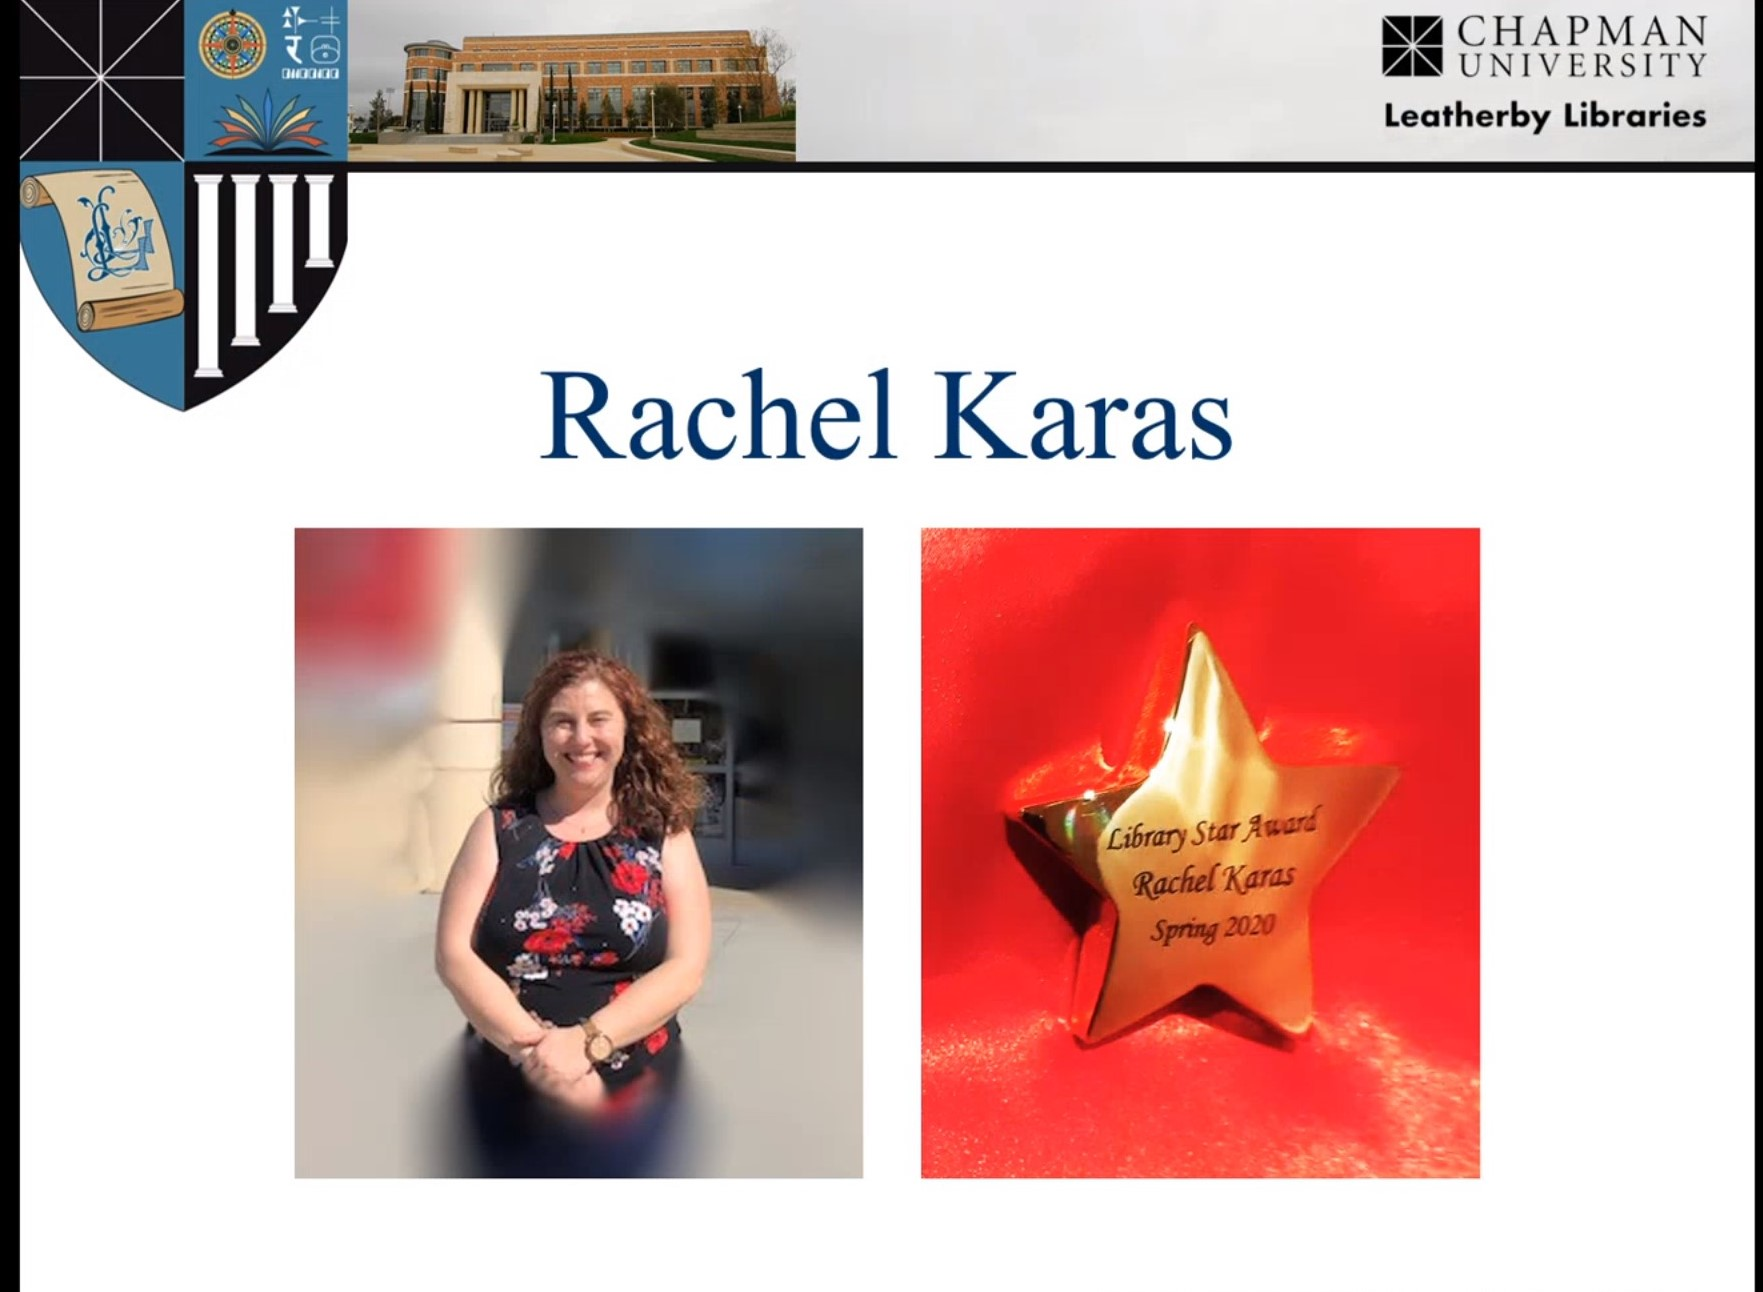 """Screenshot of a Powerpoint presentation slide. The slide has the Leatherby Libraries gonfalon in the top left corner, a photograph of the outside of the Leatherby Libraries across the top, and the black and white Leatherby Libraries logo in the upper right corner. Text on the slide reads """"Rachel Karas"""" in blue font. Below the text, on the left, is a photograph of Rachel outside the Leatherby Libraries in a black shirt with red and white floral print, and on the right, a photograph of a small bronze star engraved with the words """"Leatherby Libraries Star Award Rachel Karas"""" on a red background"""